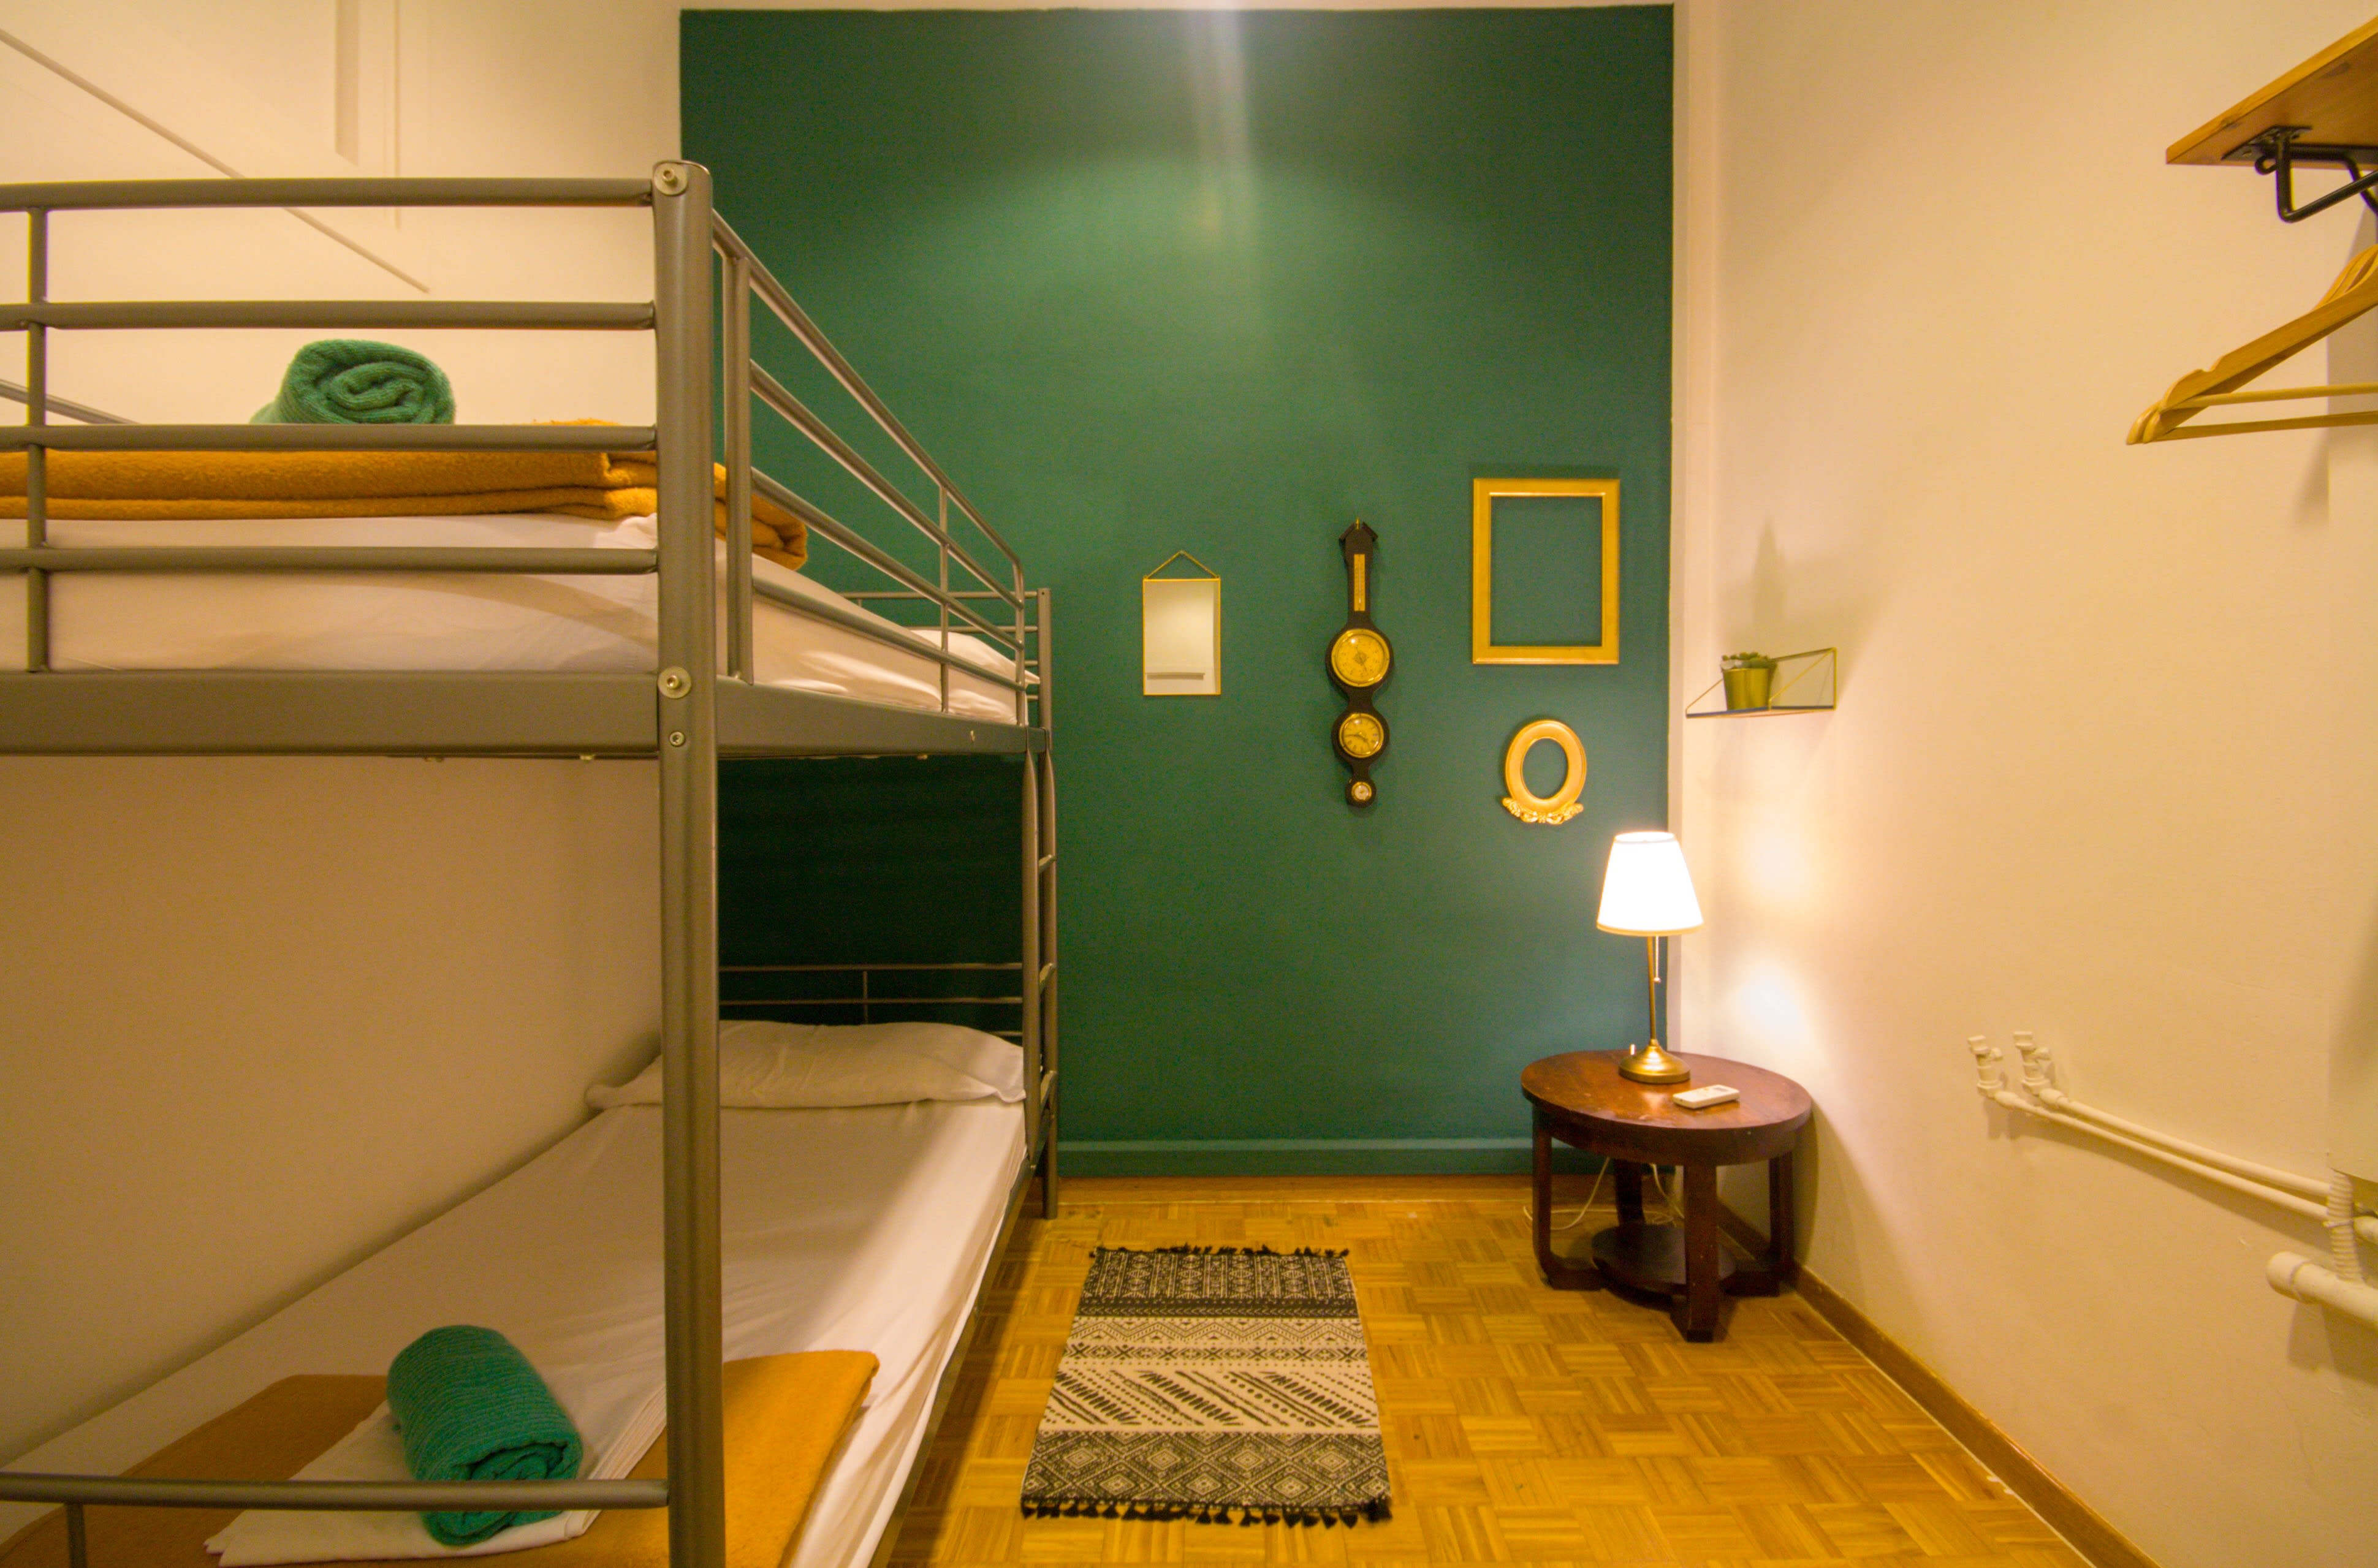 HOSTEL - The Hipstel Paseo de Gracia